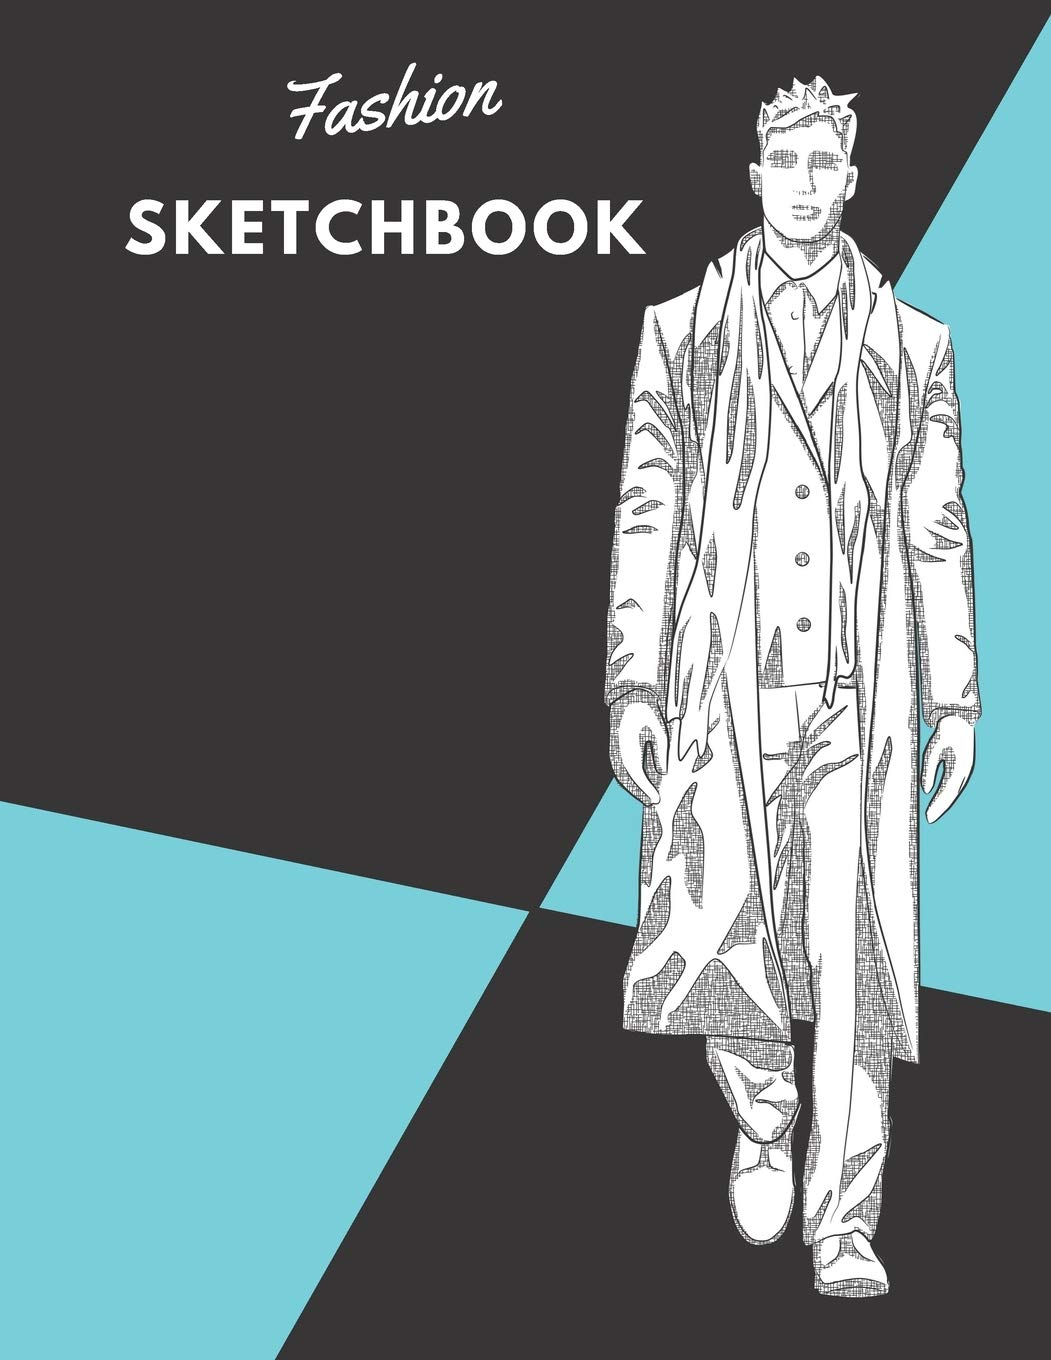 Fashion Sketchbook 100 Large Male Figure Templates With 10 Different Poses For Easily Sketching Your Fashion Design Styles Coloring Carolyn 9781699846971 Amazon Com Books